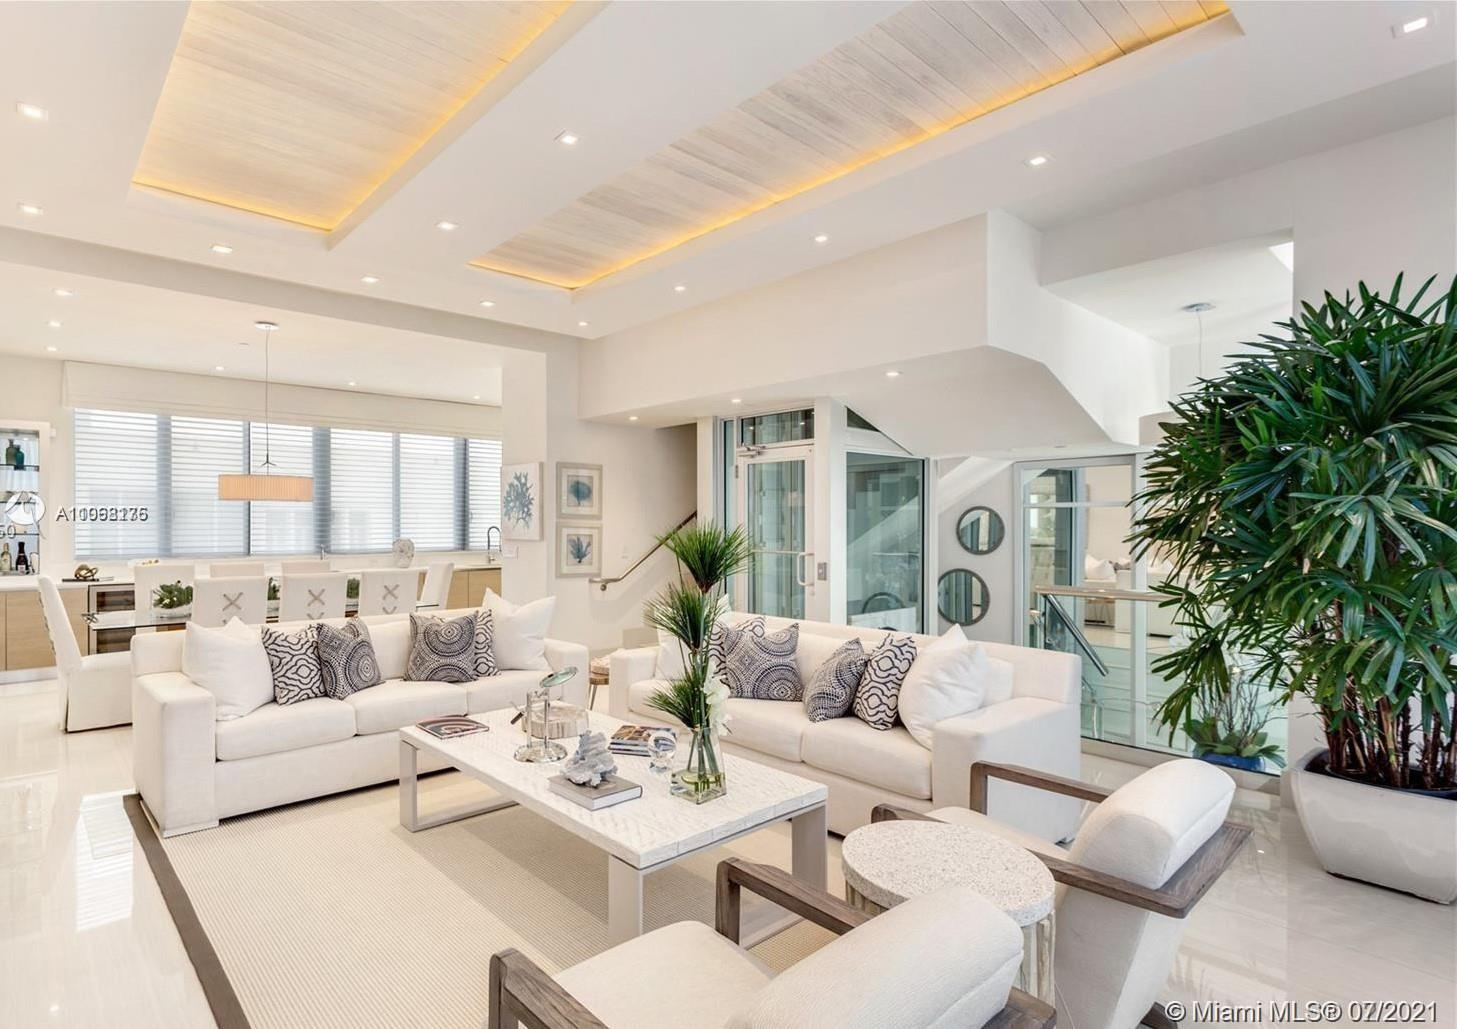 EXCLUSIVE TURN-KEY BEACHFRONT LUXURY TOWNHOUSE! Spanning over 4 stories, this meticulously appointed